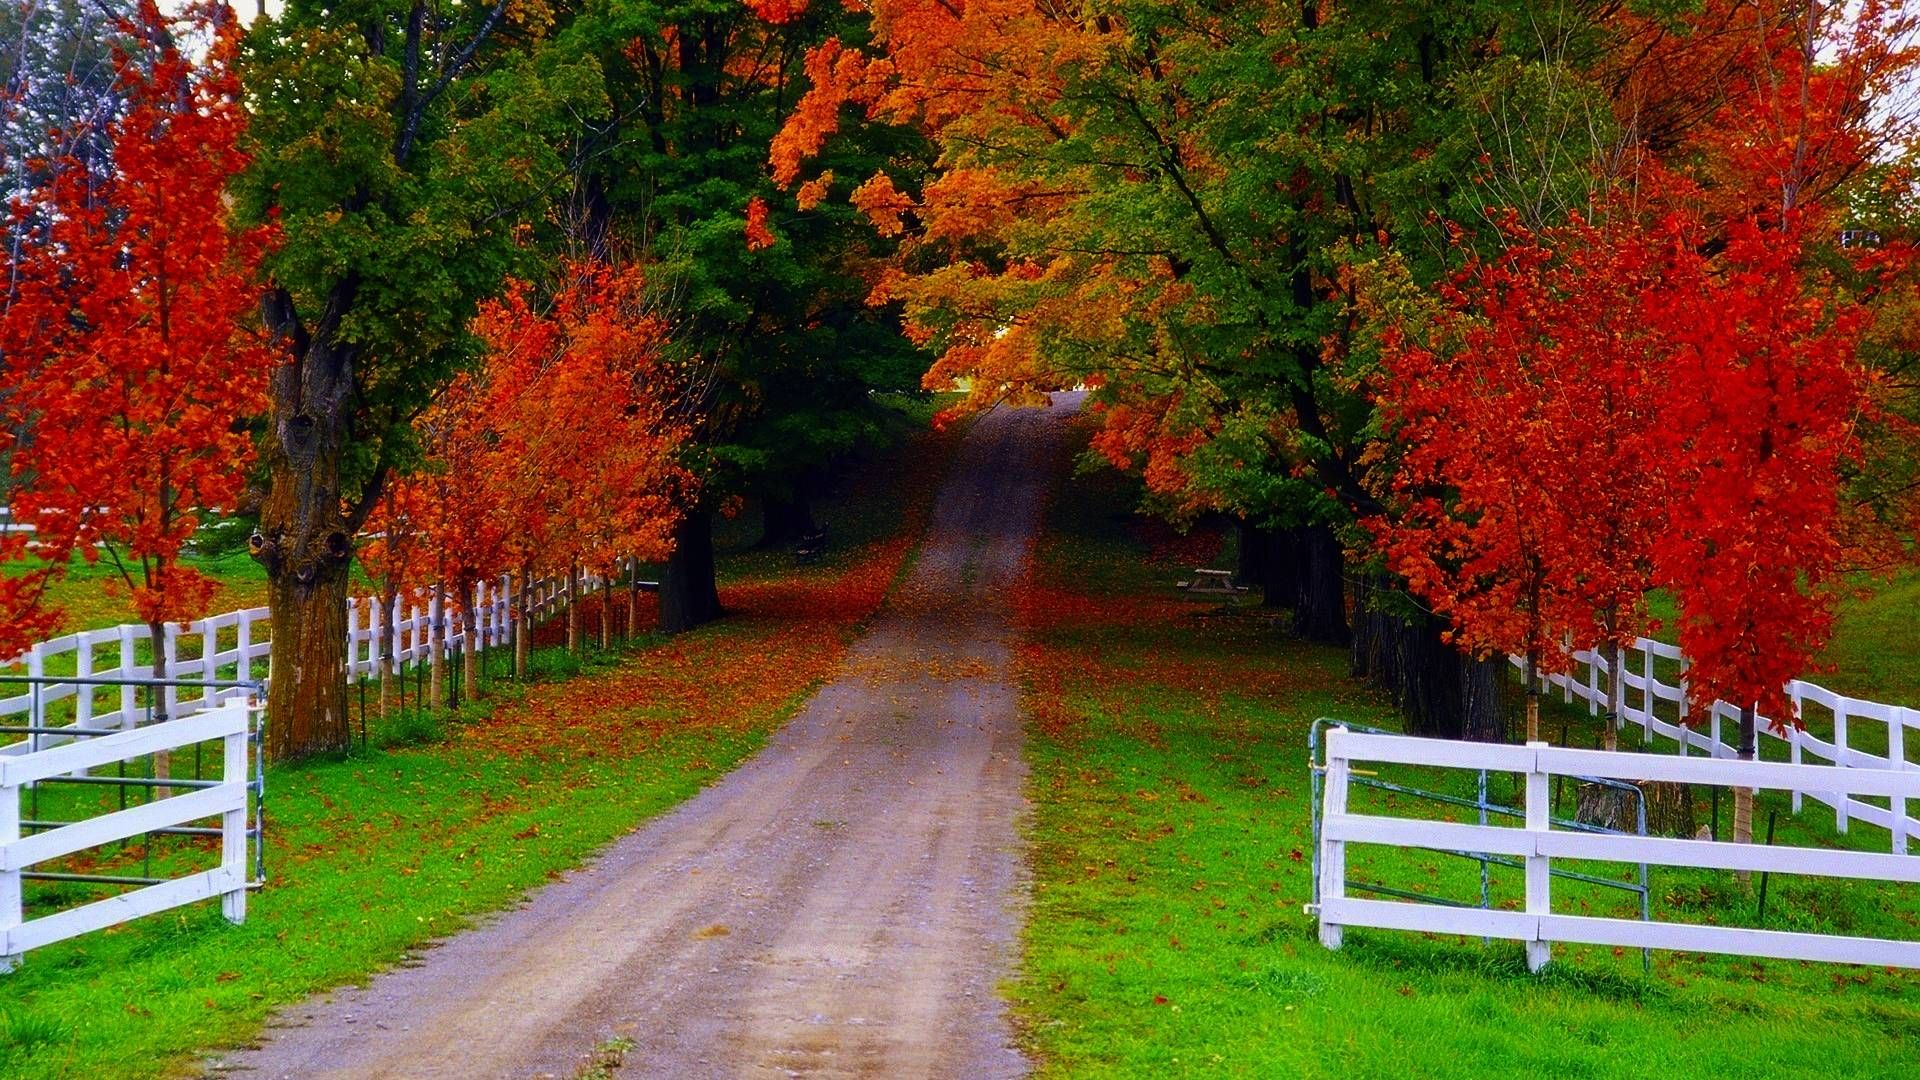 Hd Wallpapers Nature Fall Hd Cool 7 HD Wallpapers